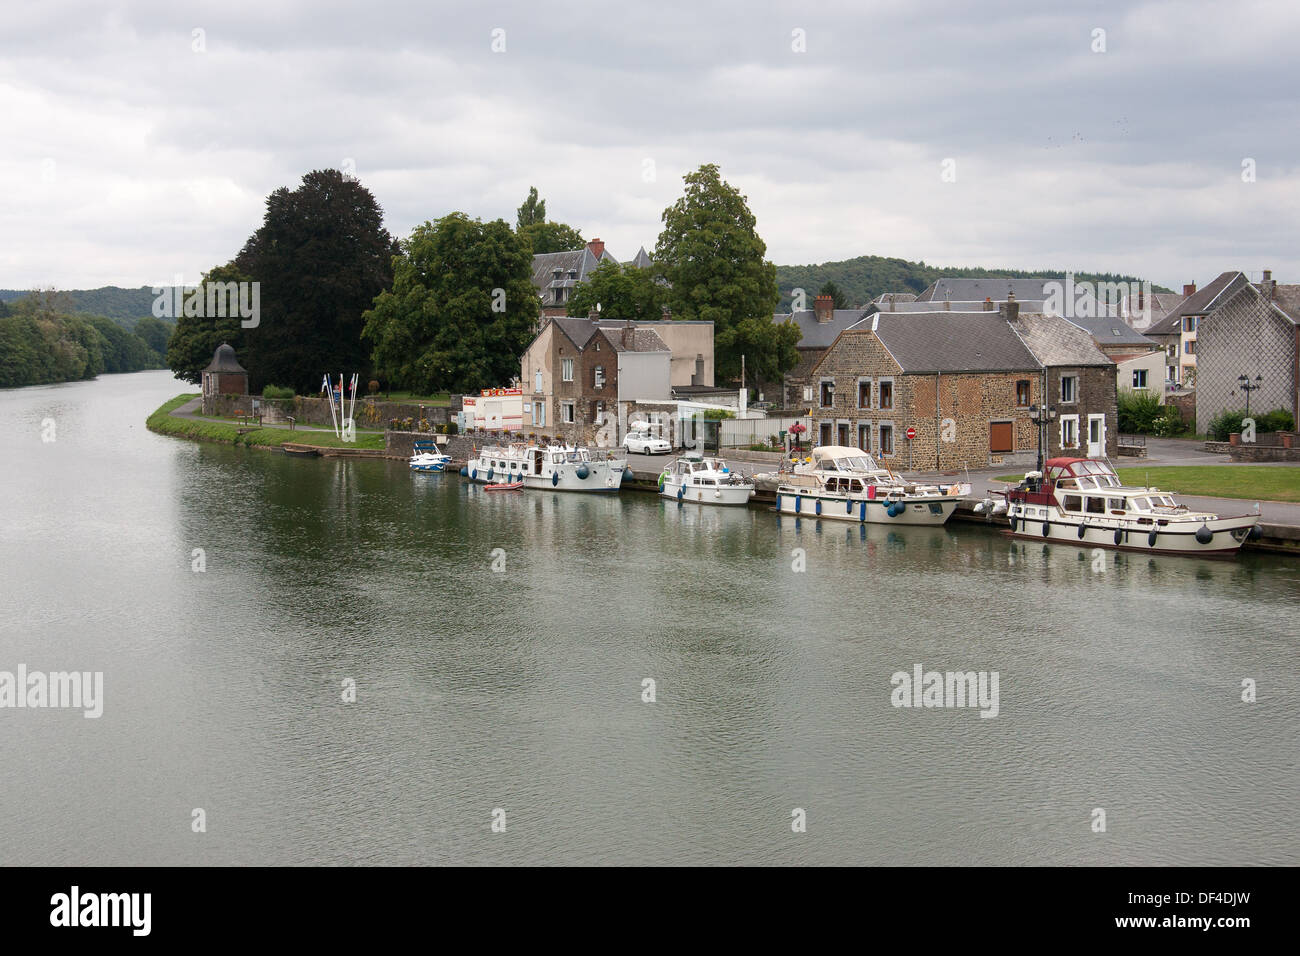 Vireux molhain wallerand champagne ardenne france europe - Plateforme meuse champagne ardenne ...